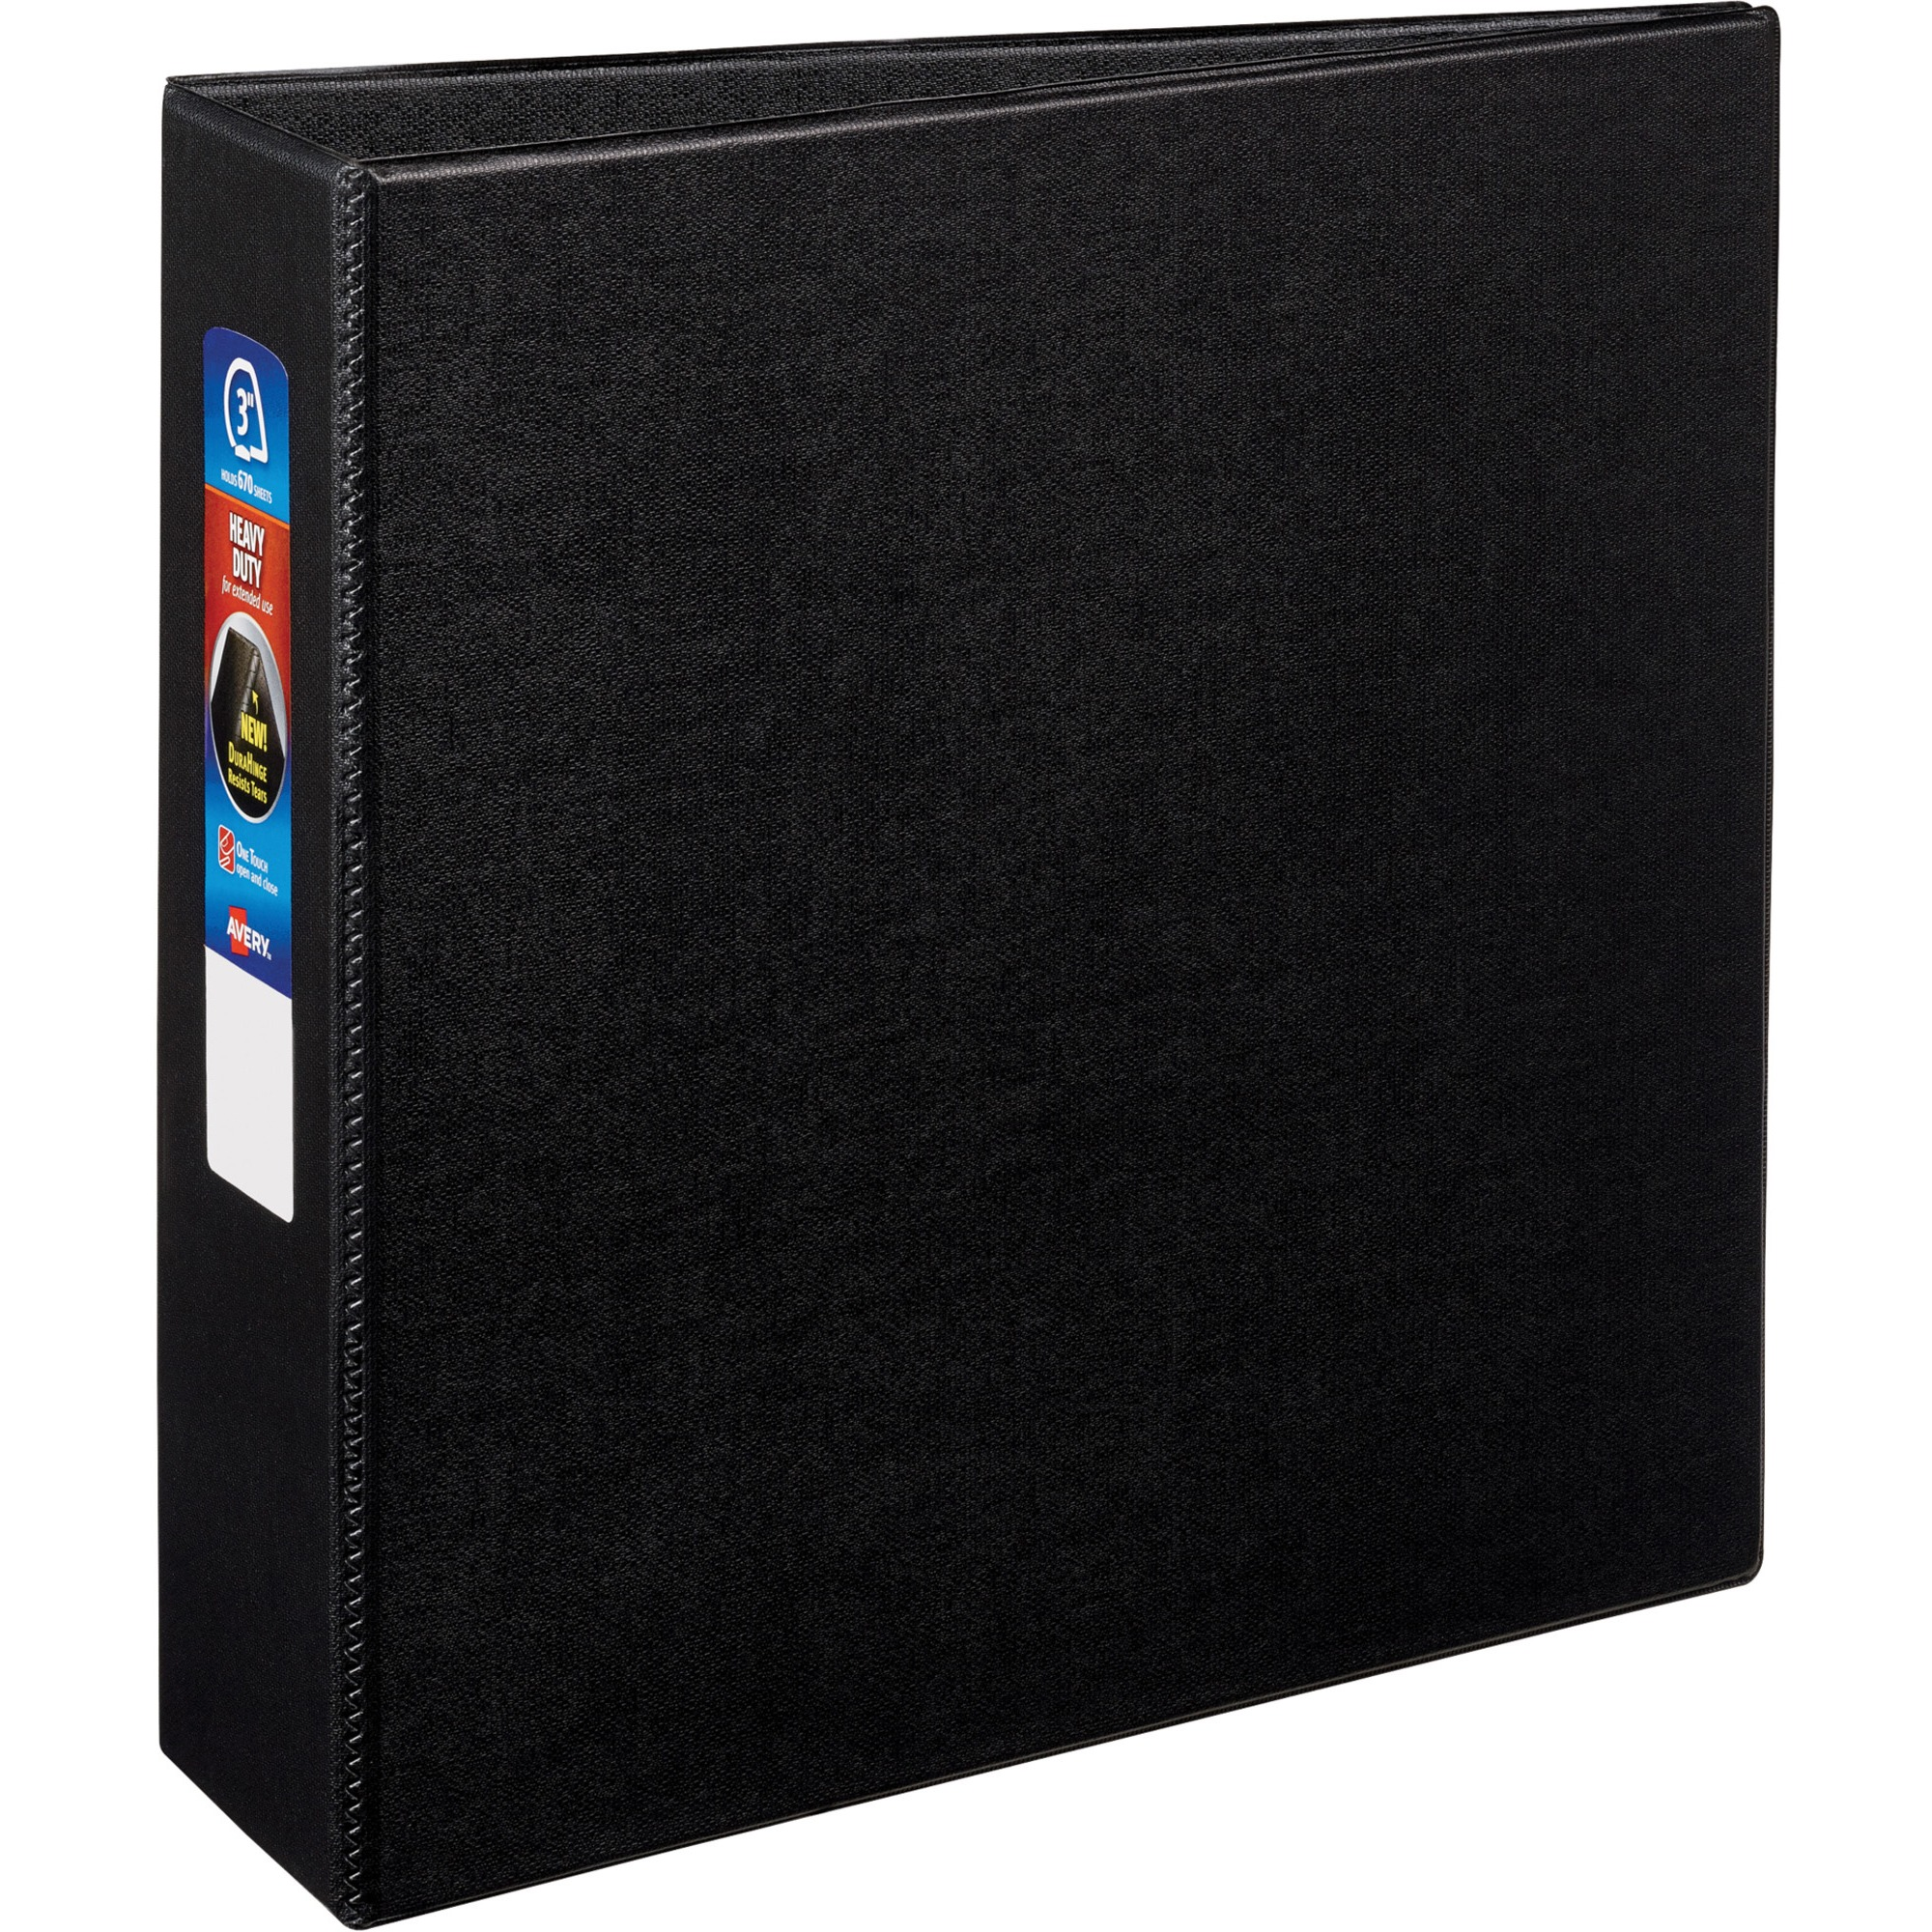 Avery Heavy-Duty Binder With EZD Ring, Black, Available In